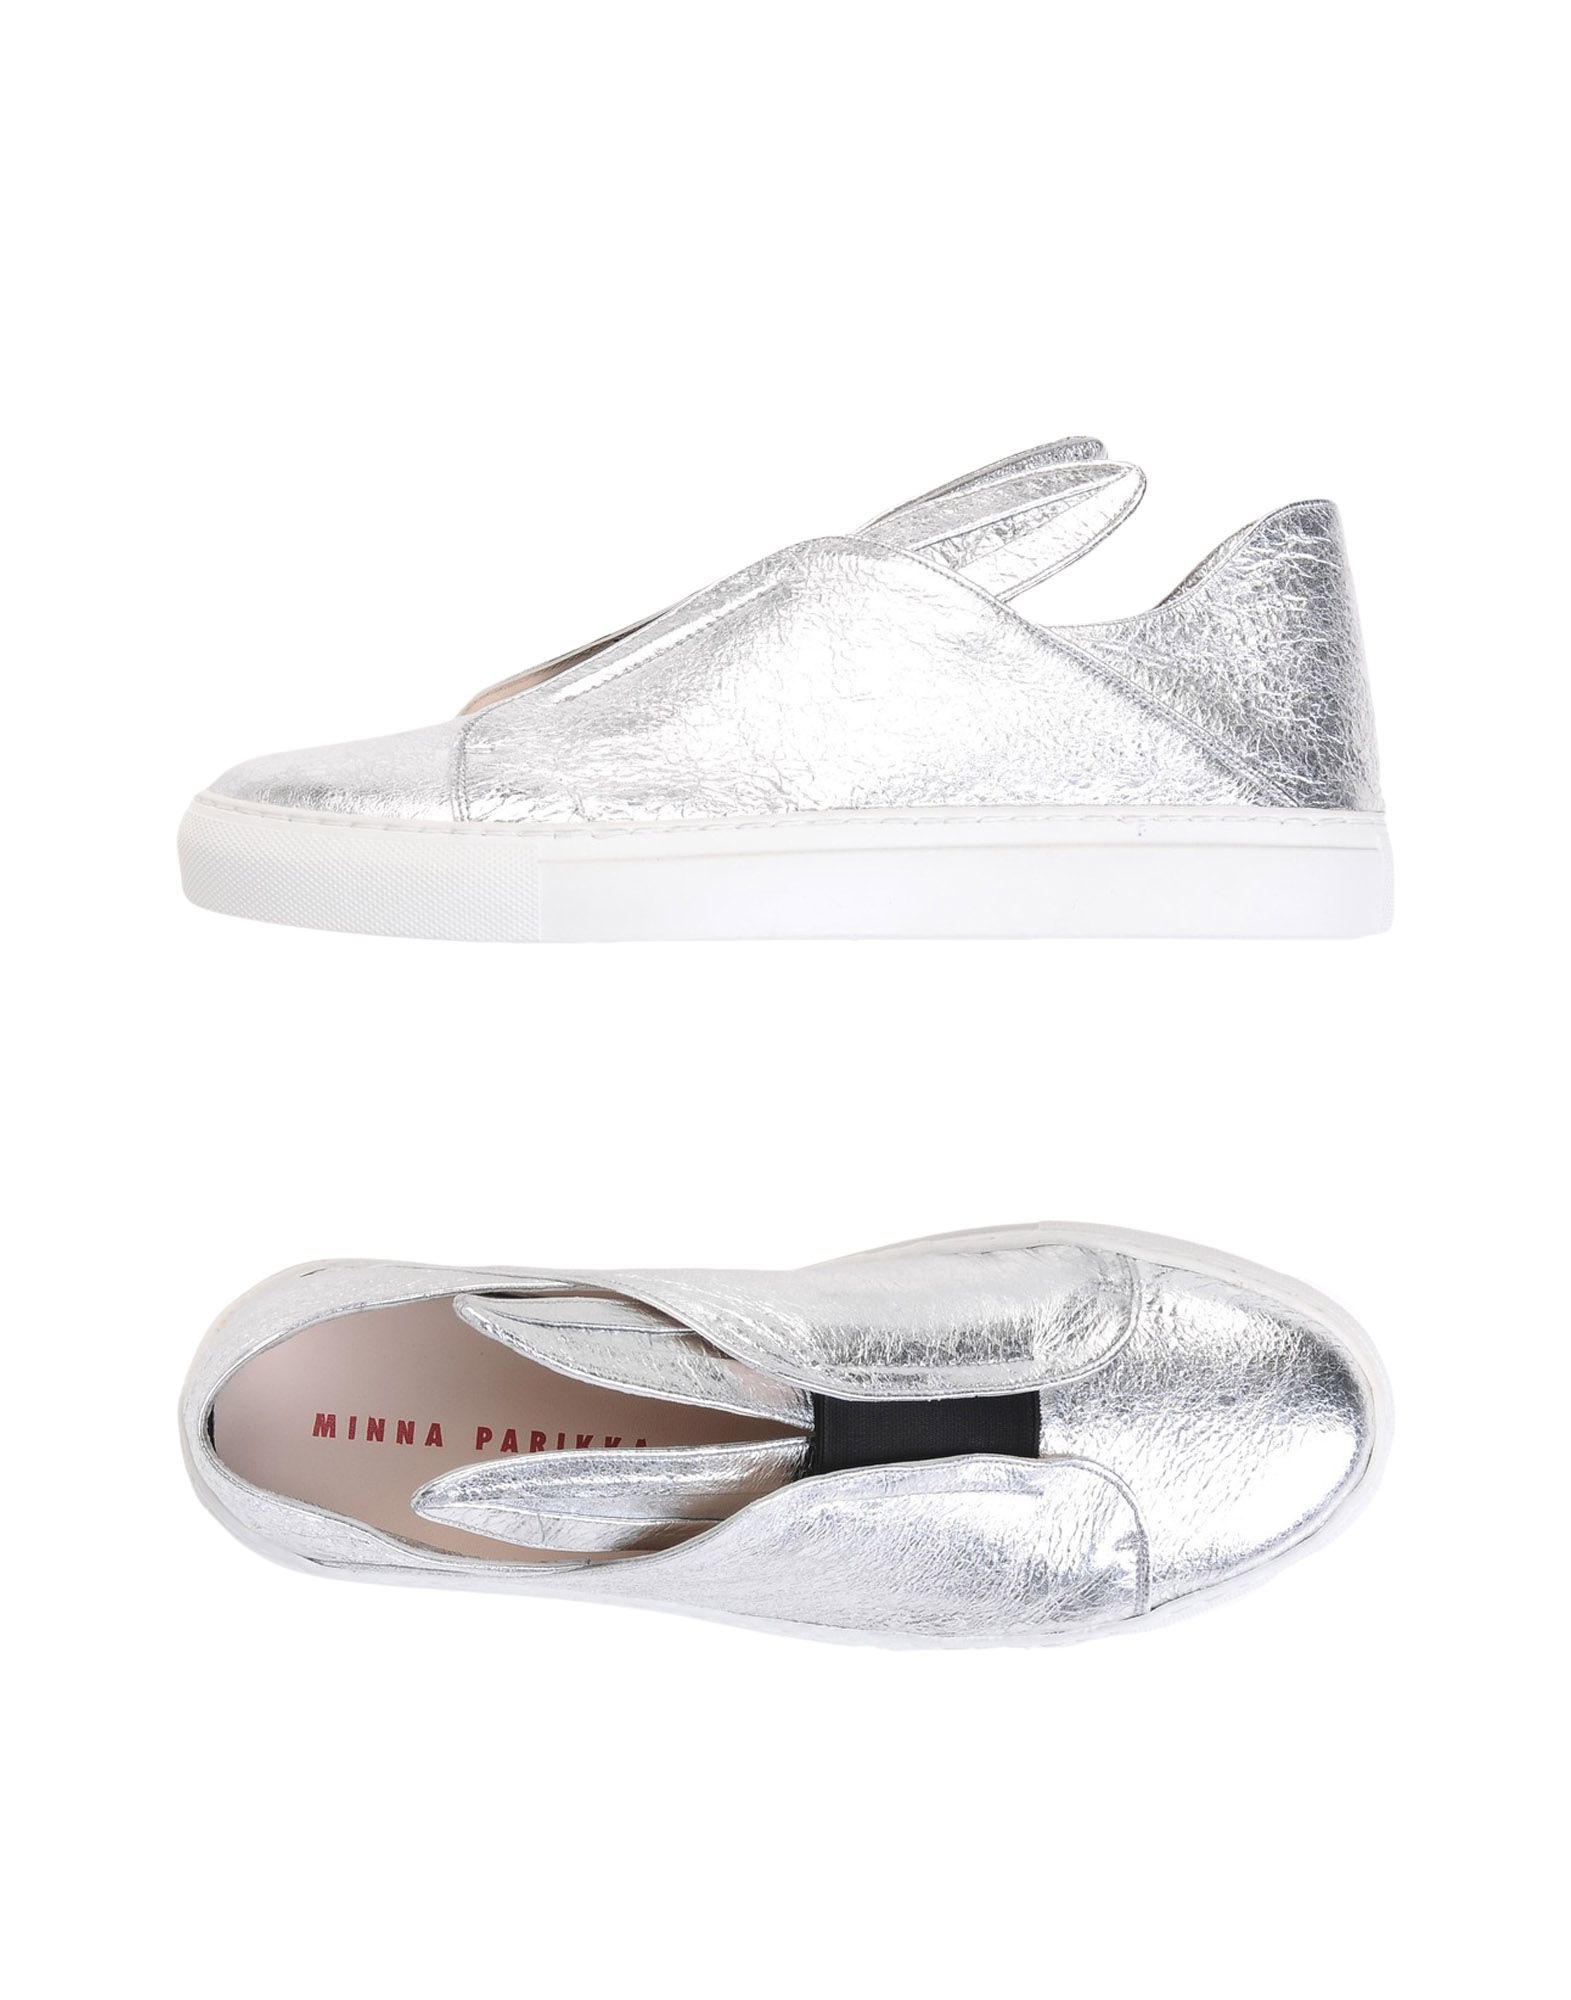 Sneakers Minna Parikka Doublet Low Top Sneaker With Collabsible Heel And Bunny Ears - Donna - Acquista online su